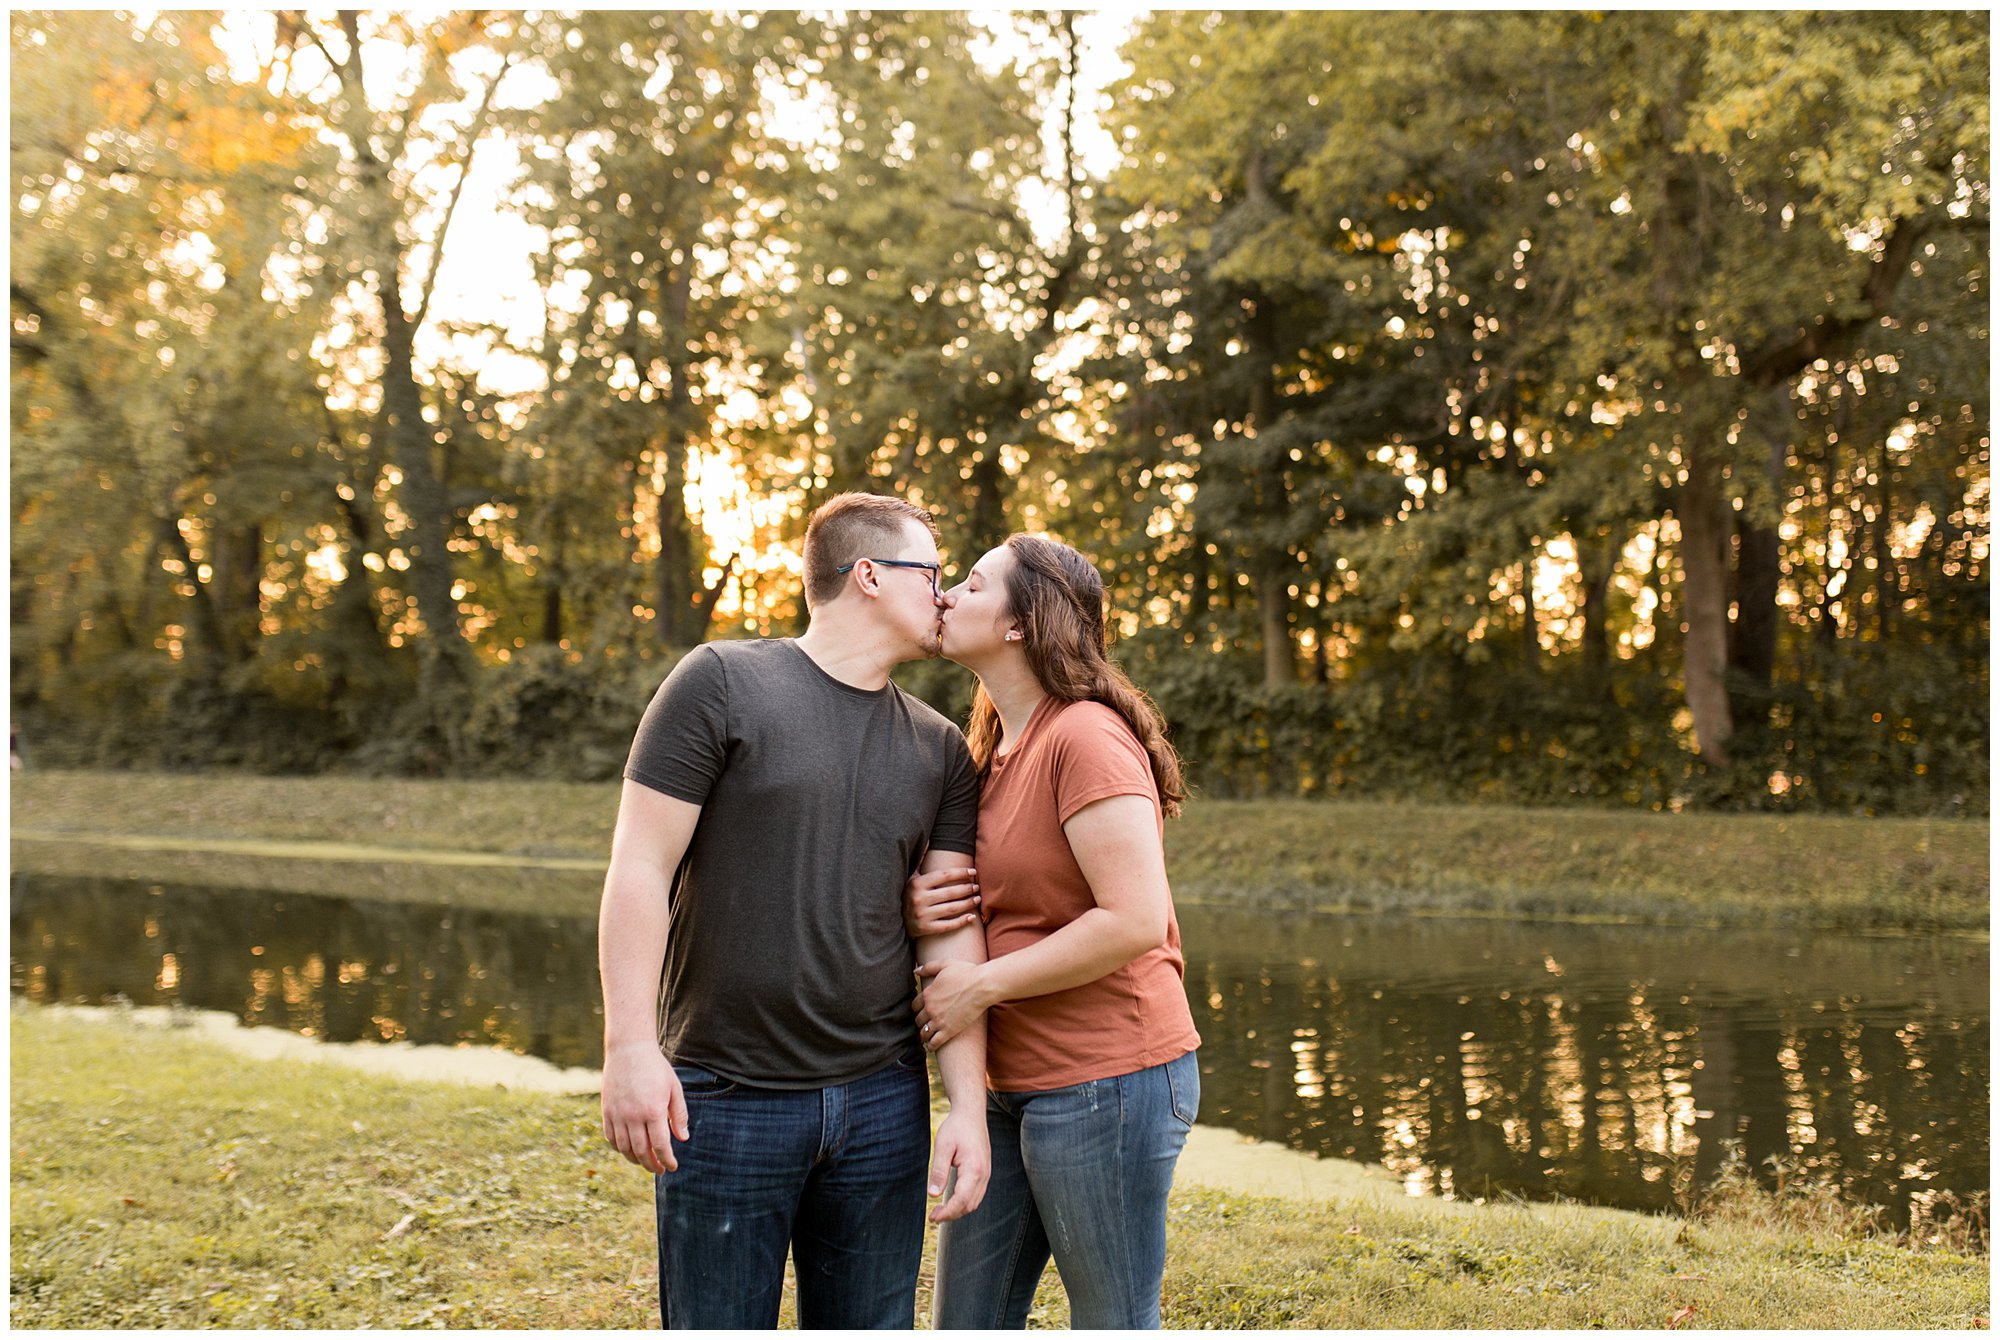 sunset engagement session at Holcomb Gardens in Indianapolis